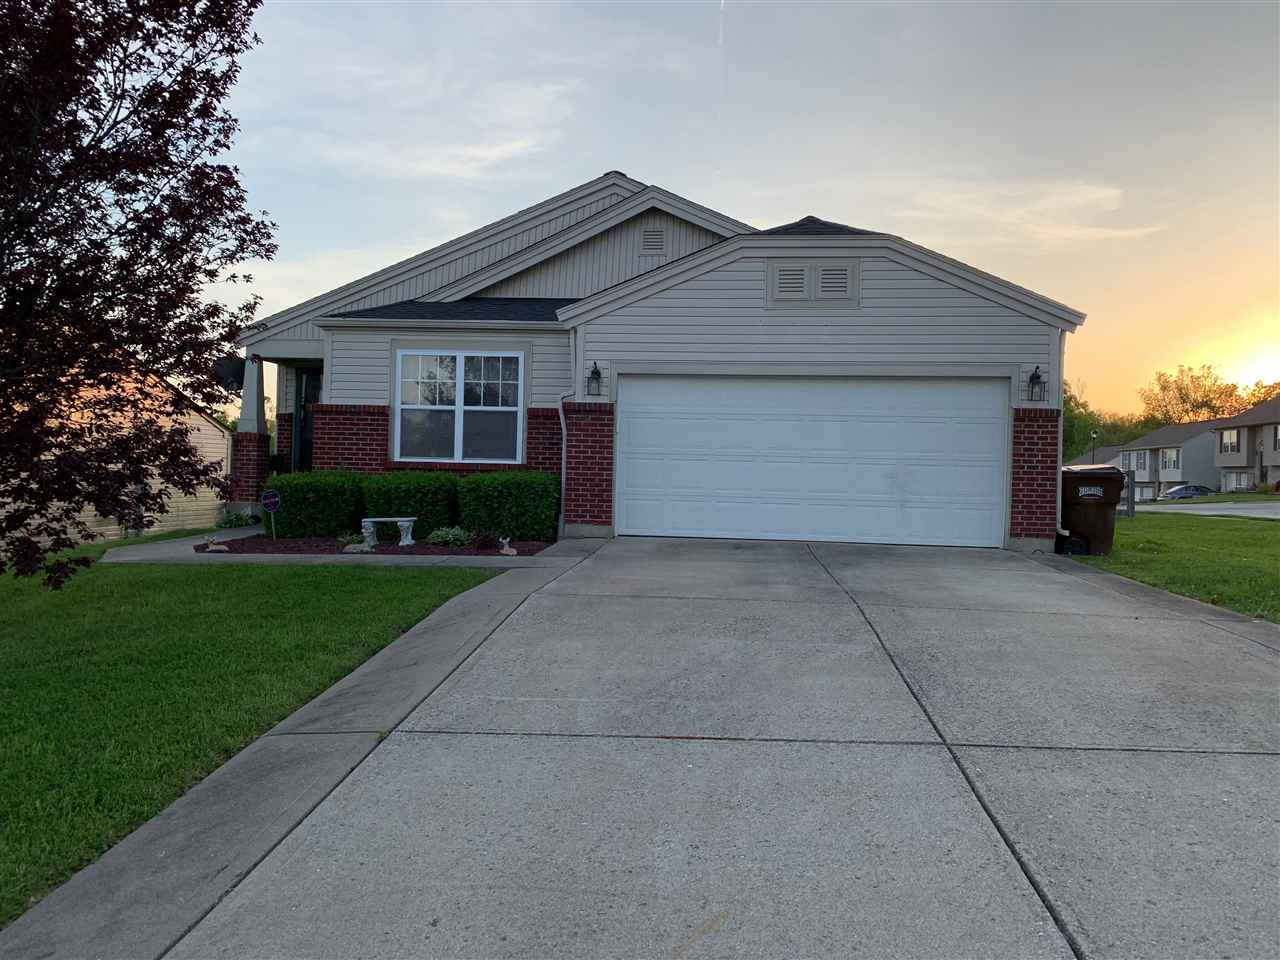 Photo 2 for 10700 Chinkapin Cir Independence, KY 41051